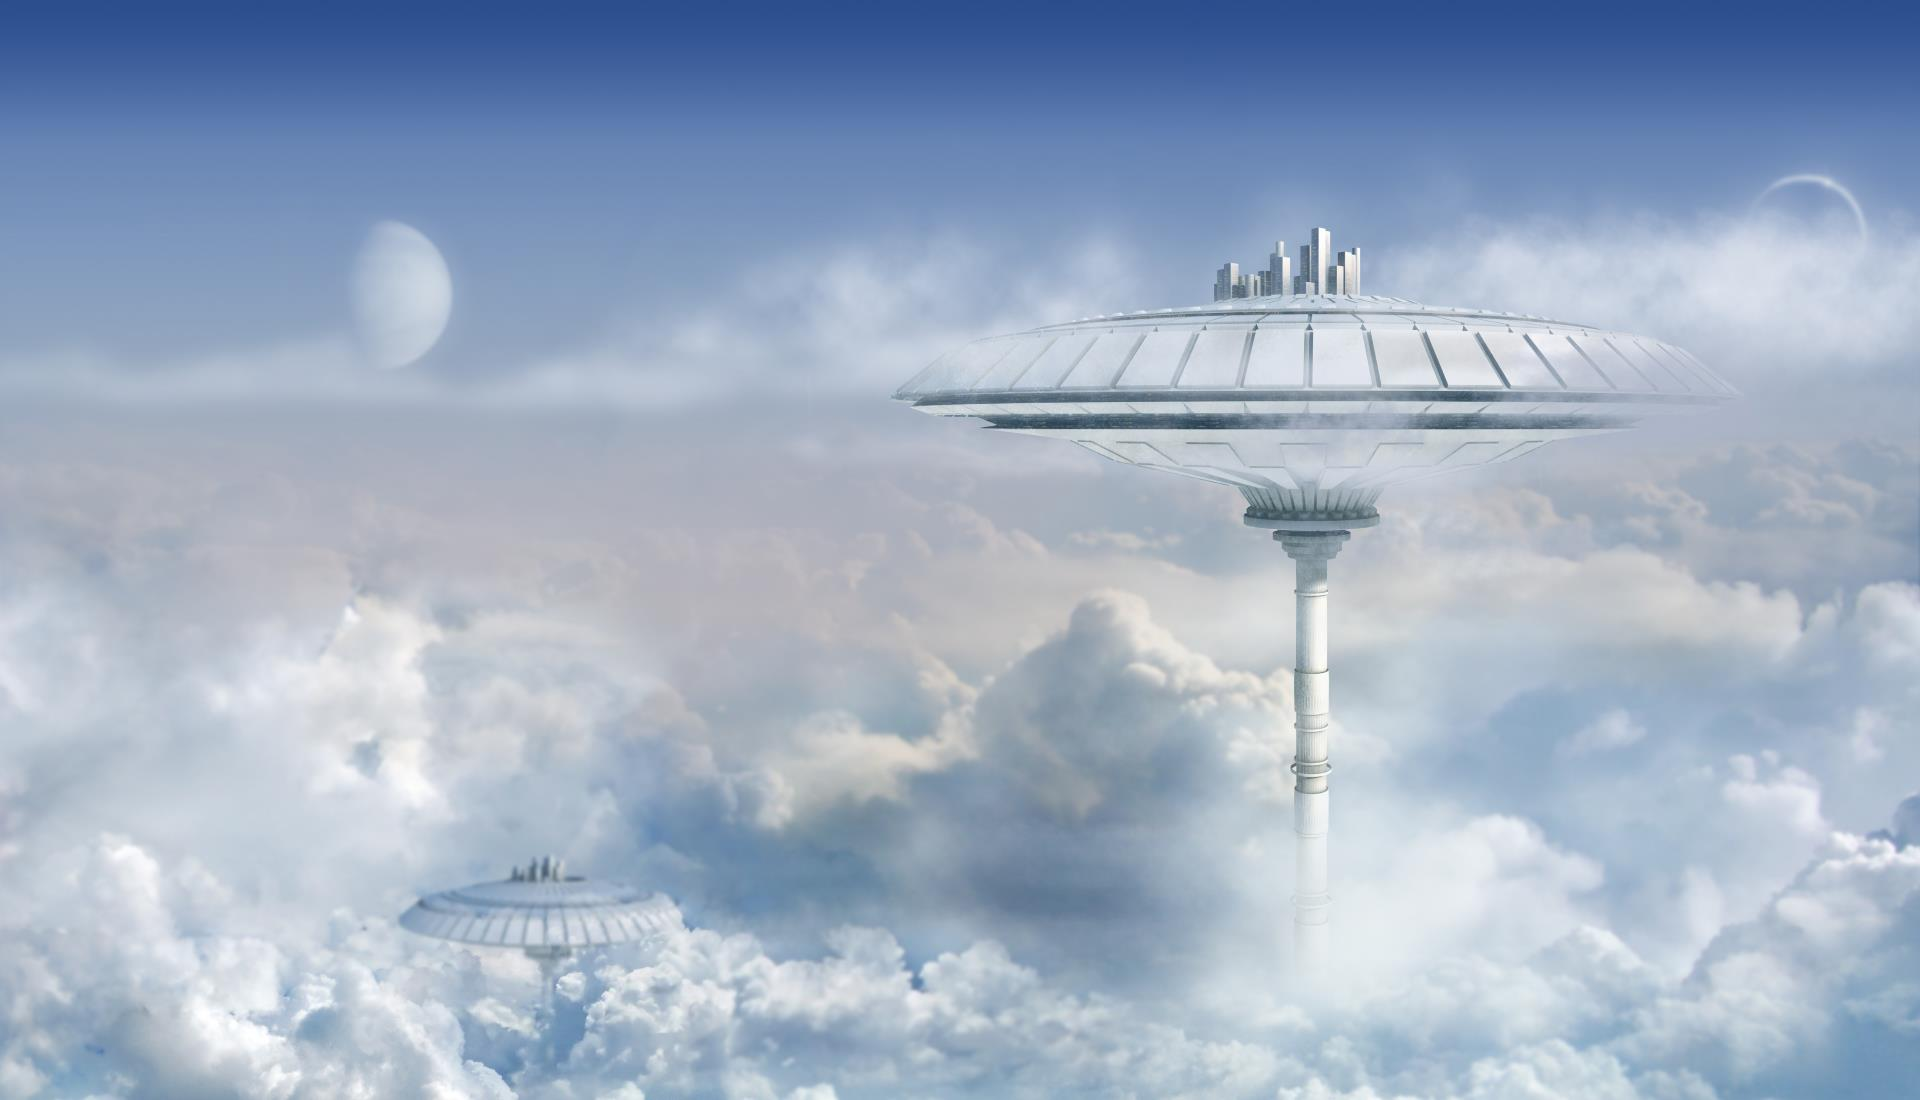 Architecture on the Nusriza homeworld.